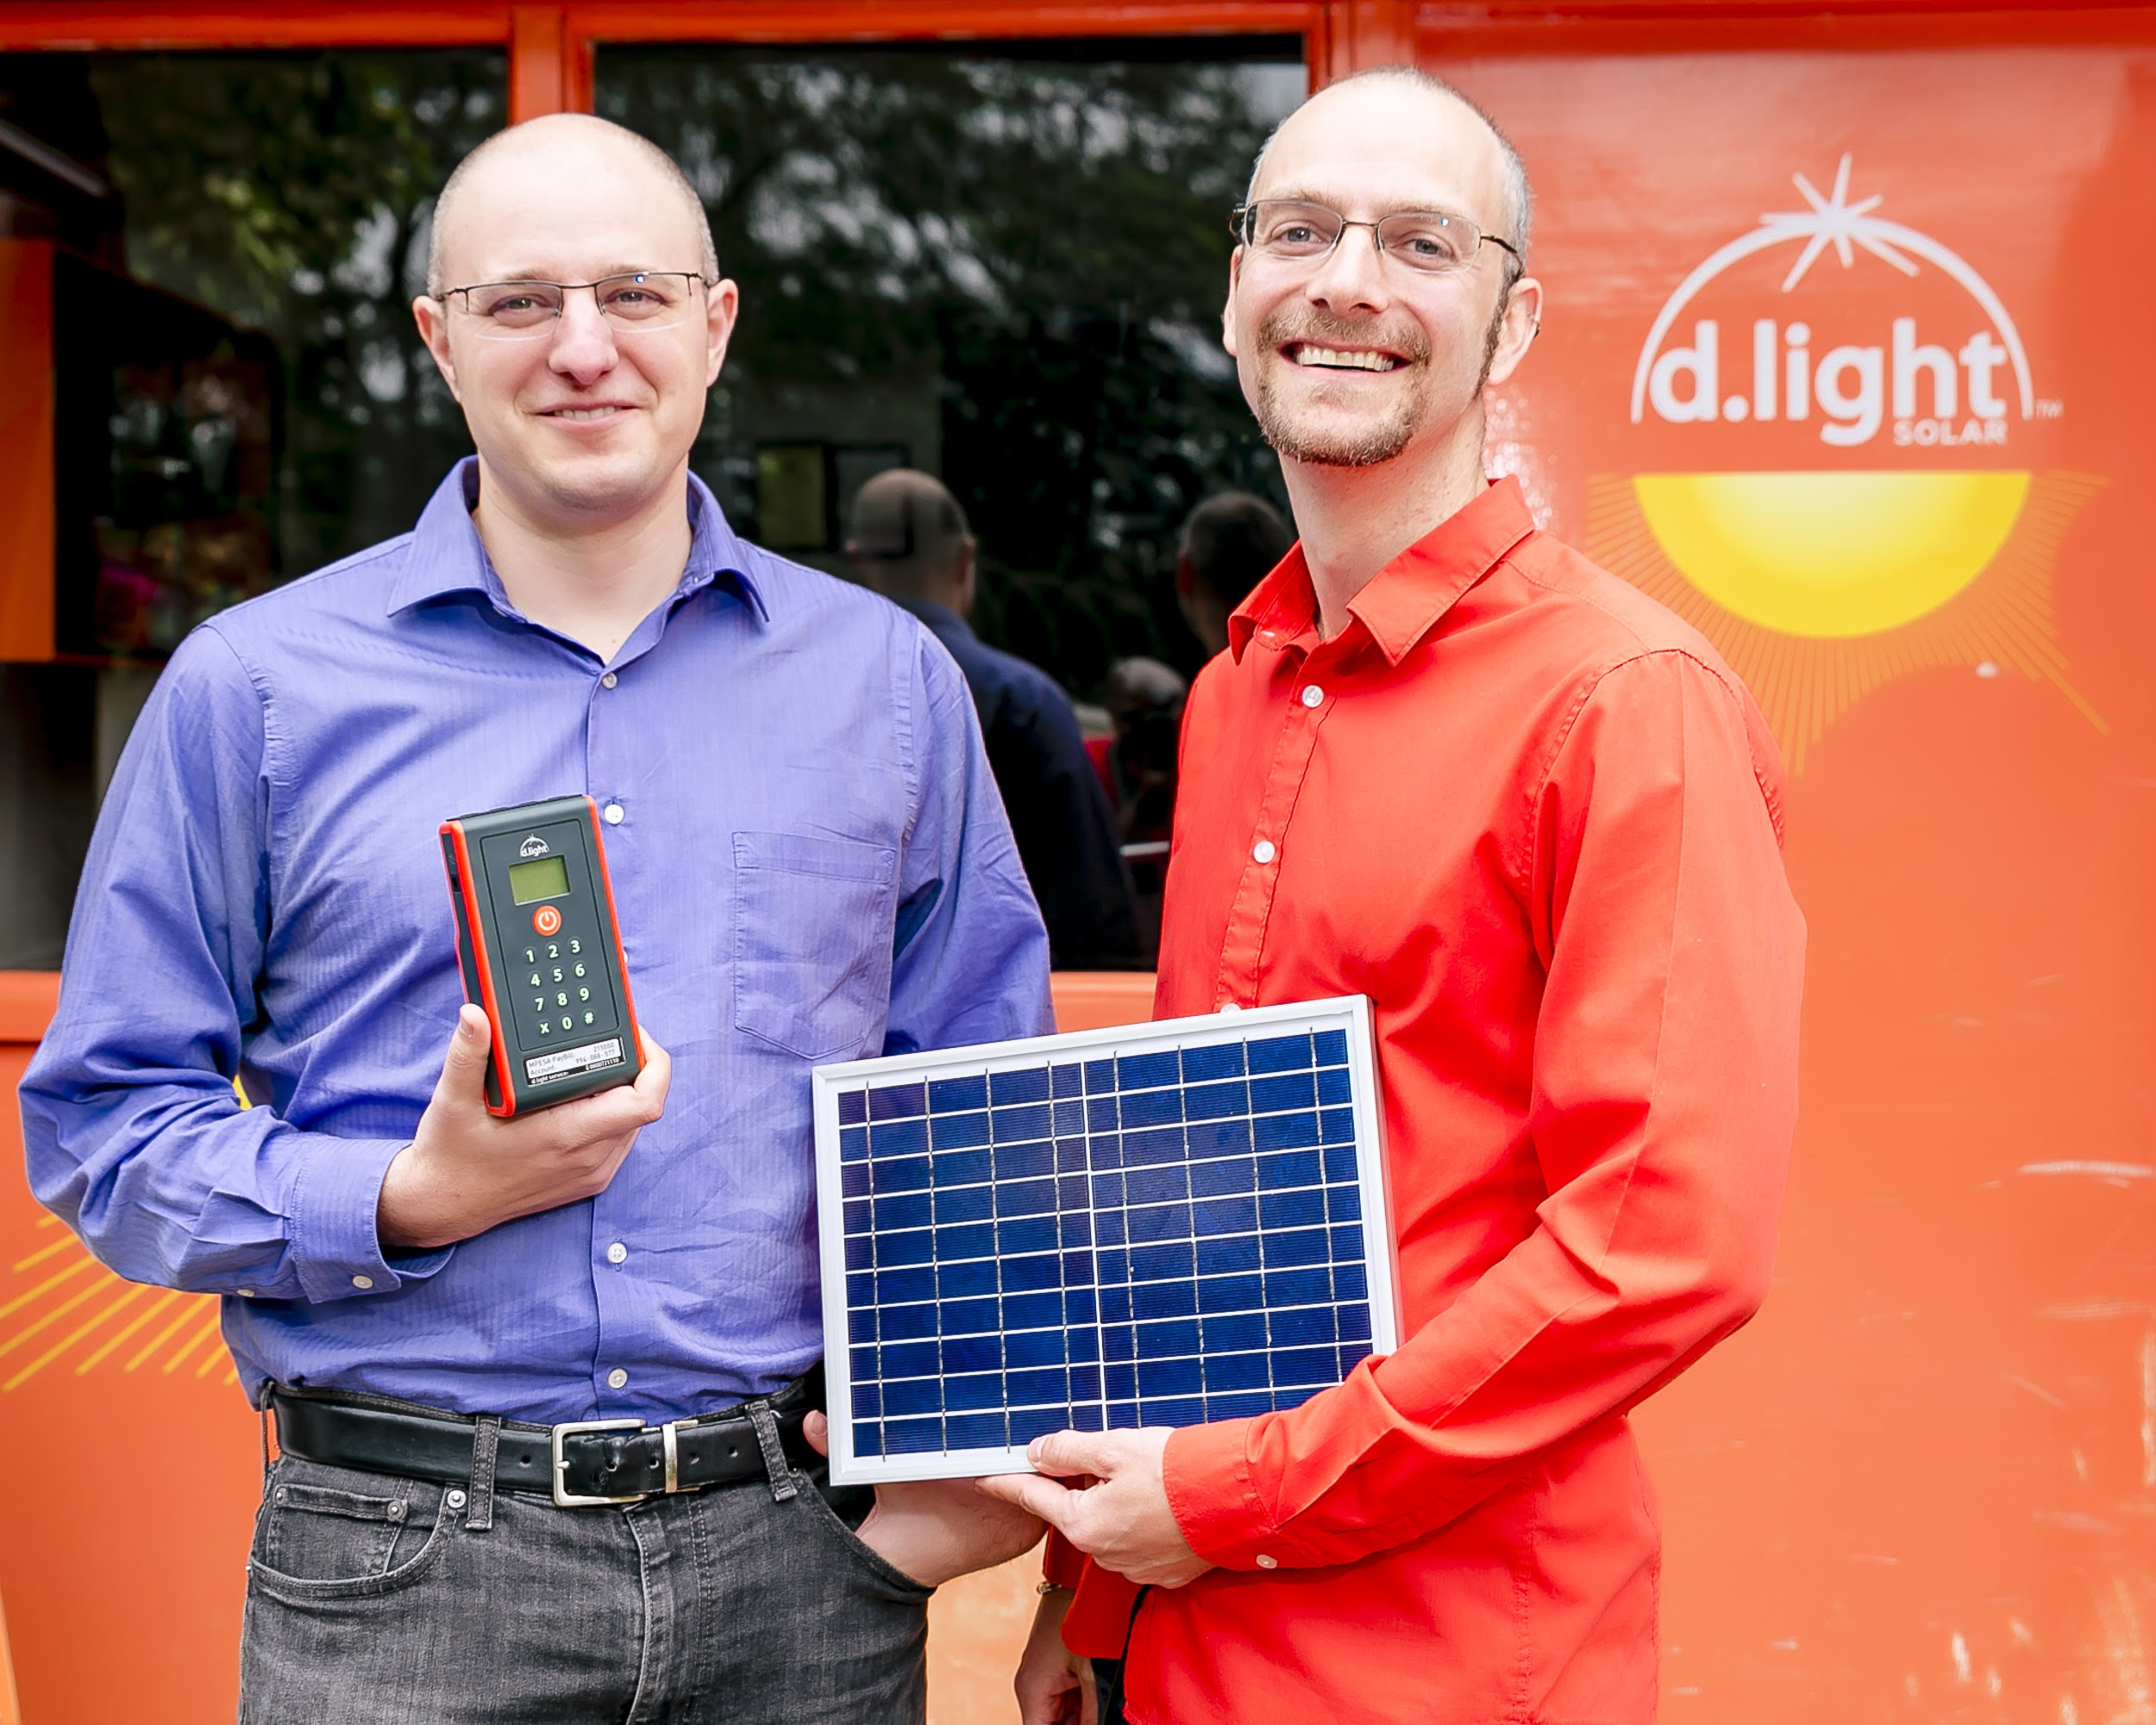 A current shot of co-founders, Ned and Sam, with d.light products.